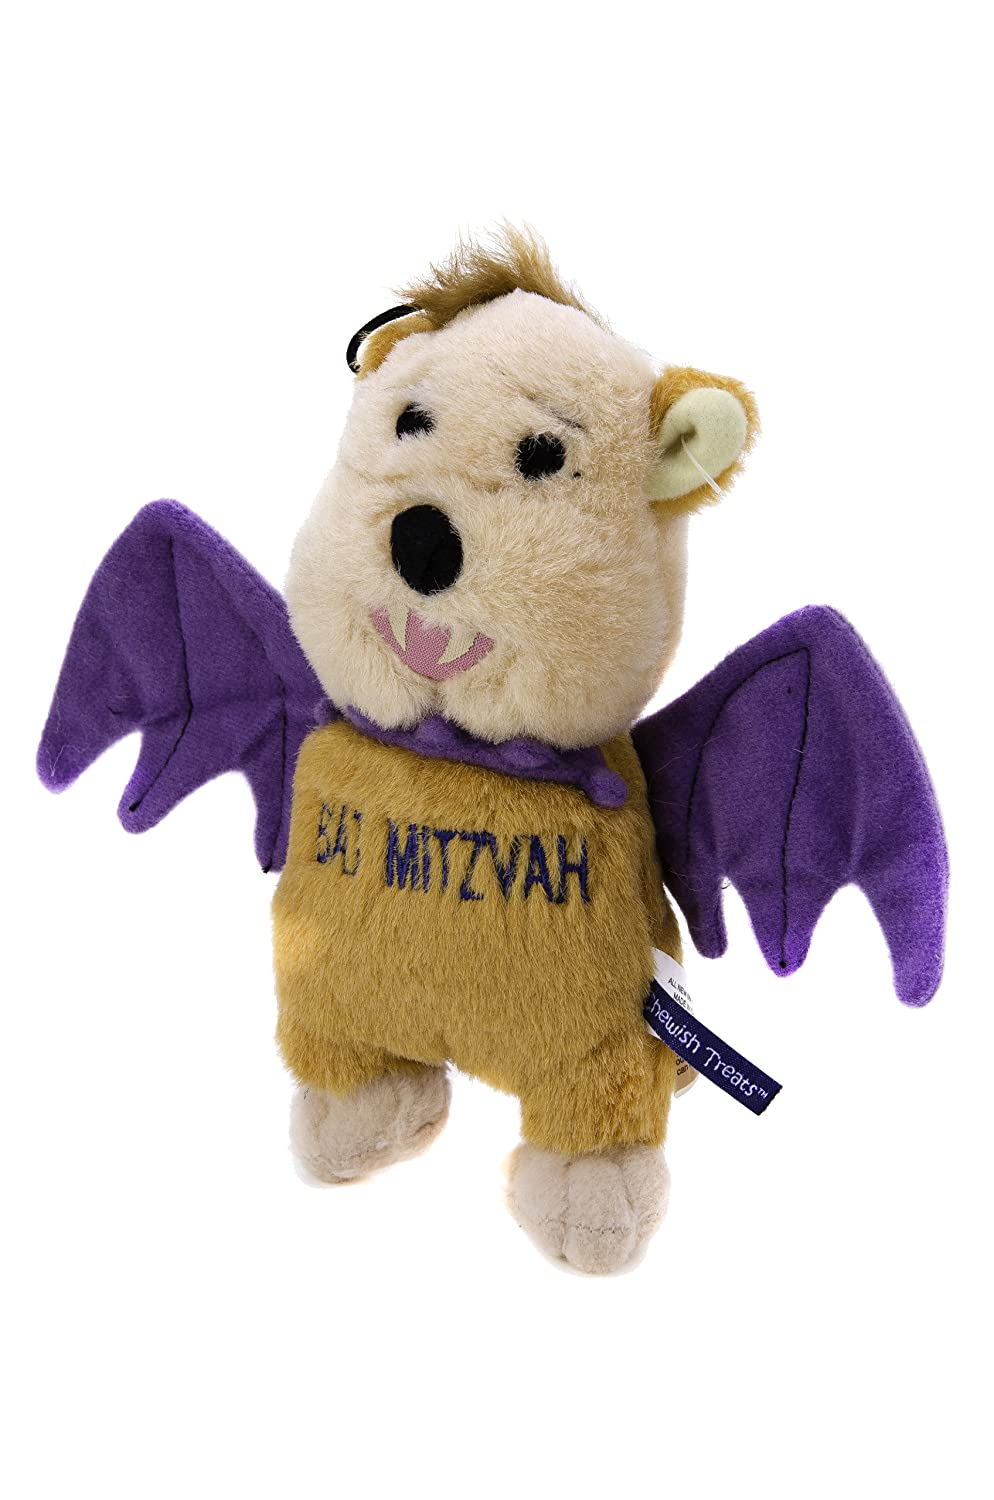 Copa Judaica Chewish Treat Bat Mitzvah Bat Squeaker Plush Dog Toy, 8 by 7-Inch, Multicolor